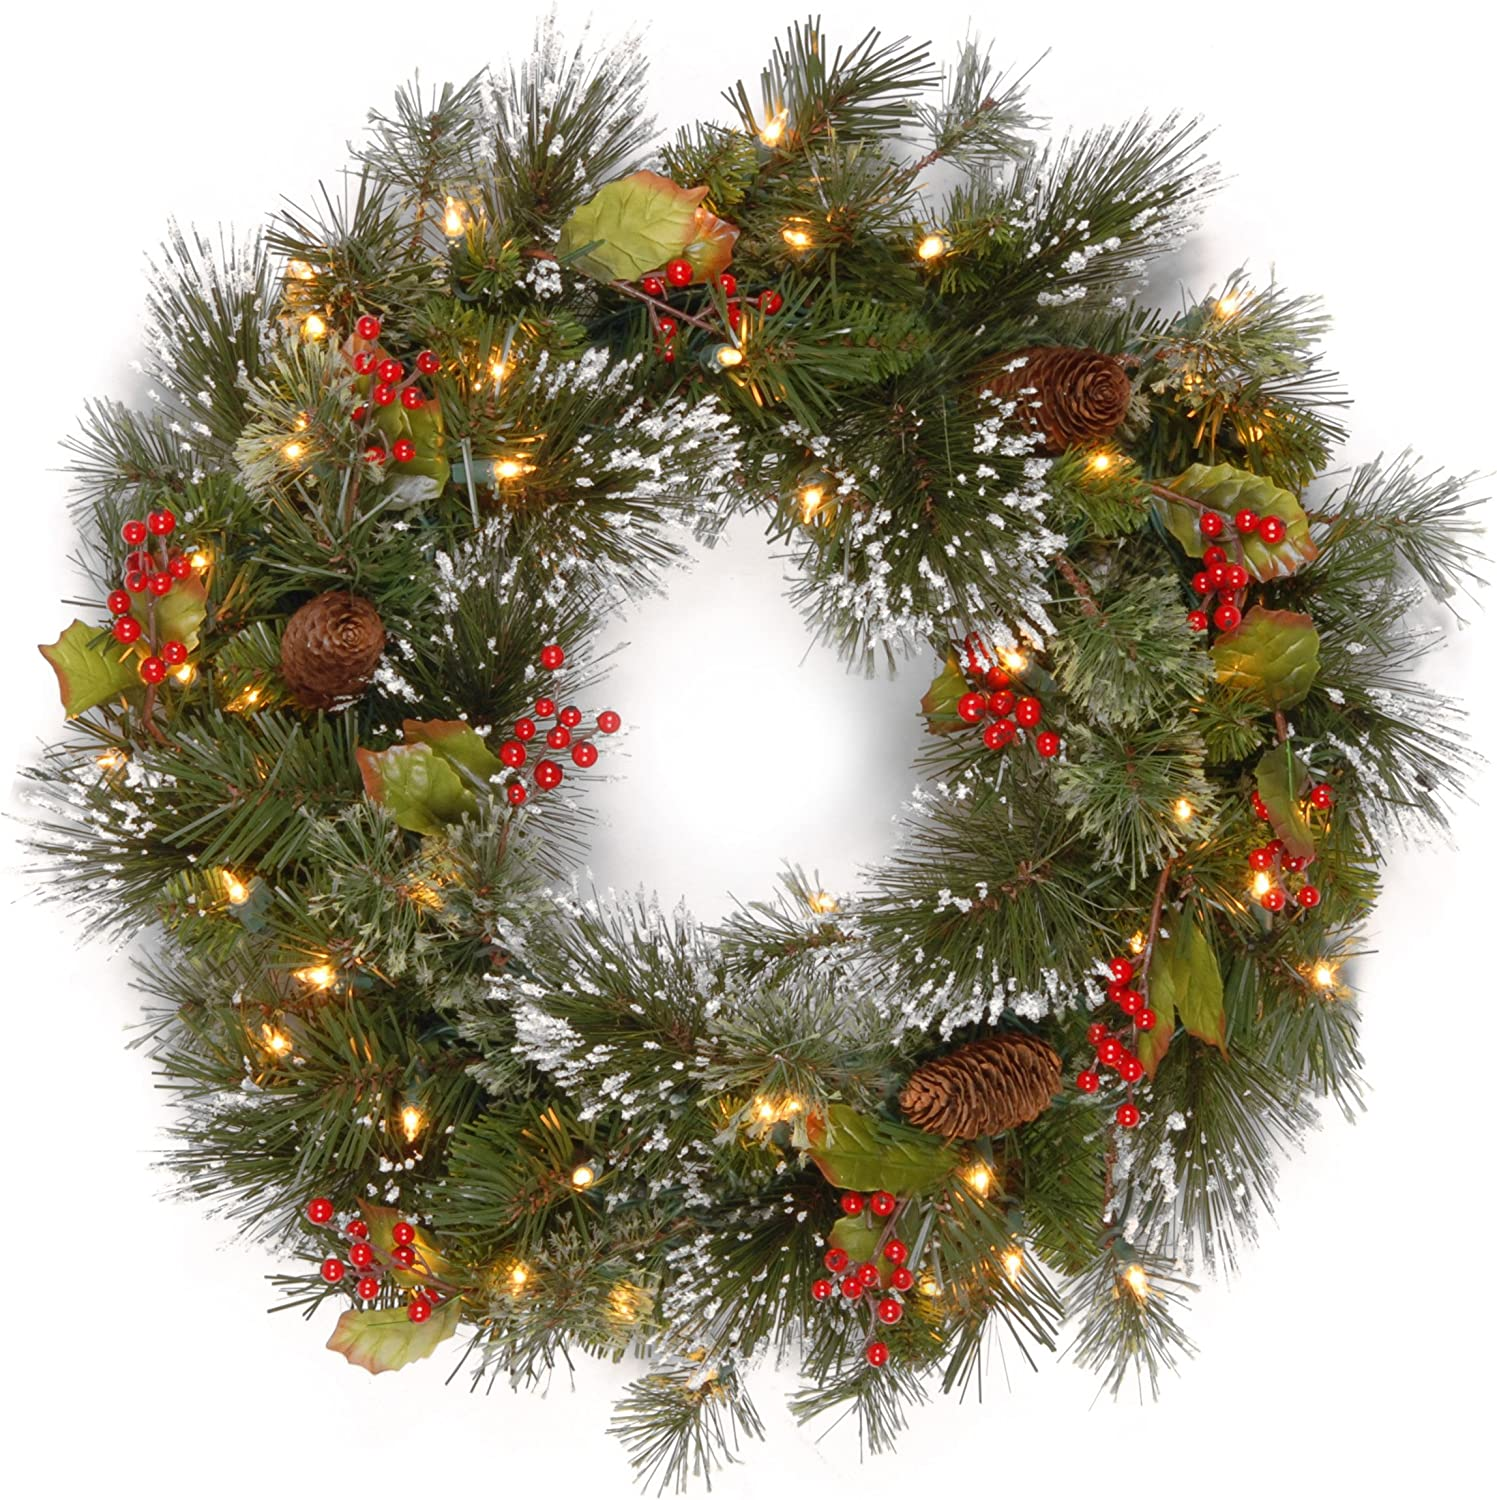 National Tree Company Pre-lit Artificial Christmas Wreath| Flocked with Mixed Decorations and Pre-strung White Lights | Wintry Pine - 24 inch